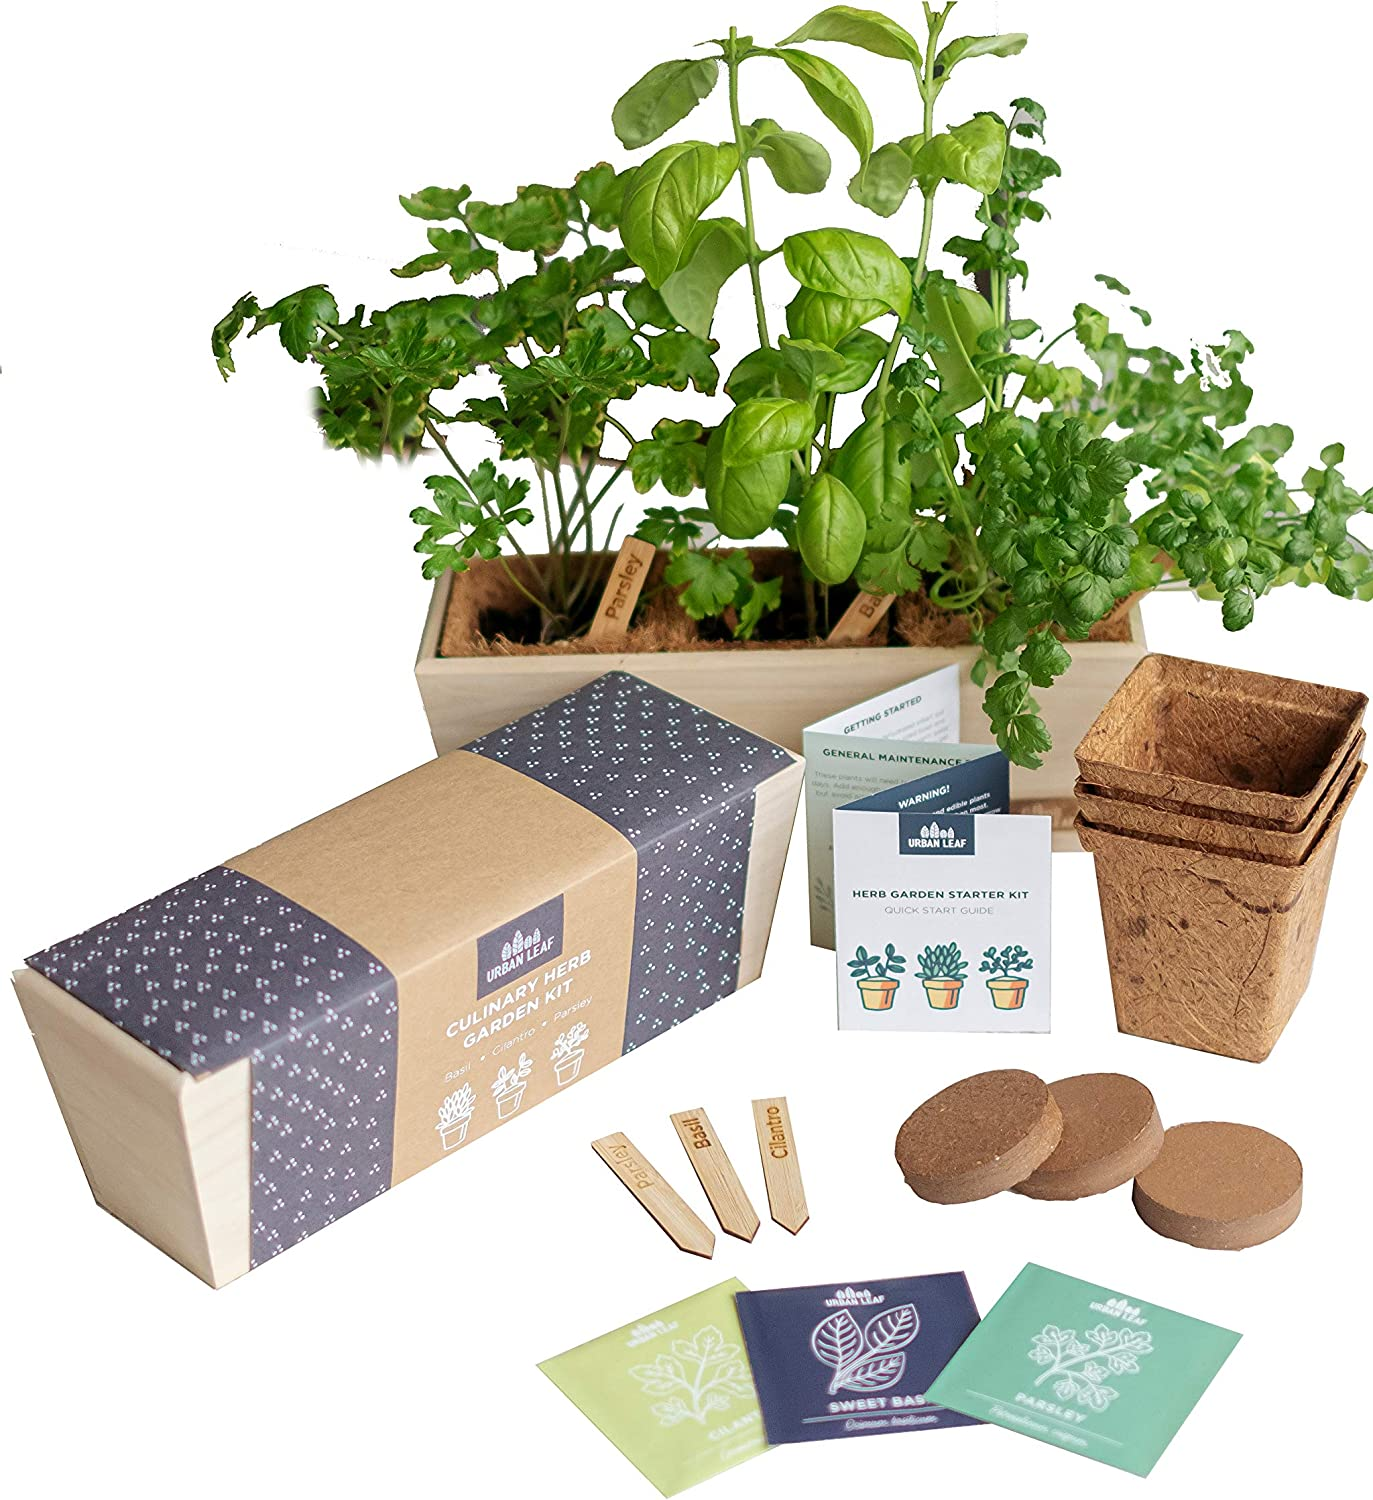 Herb Garden Starter Kit - Grow Live Herbs Indoors from Seed in Your Kitchen or Window - Perfect Gardening Gift - Indoor Garden Kit - Includes Premium Herb Seeds